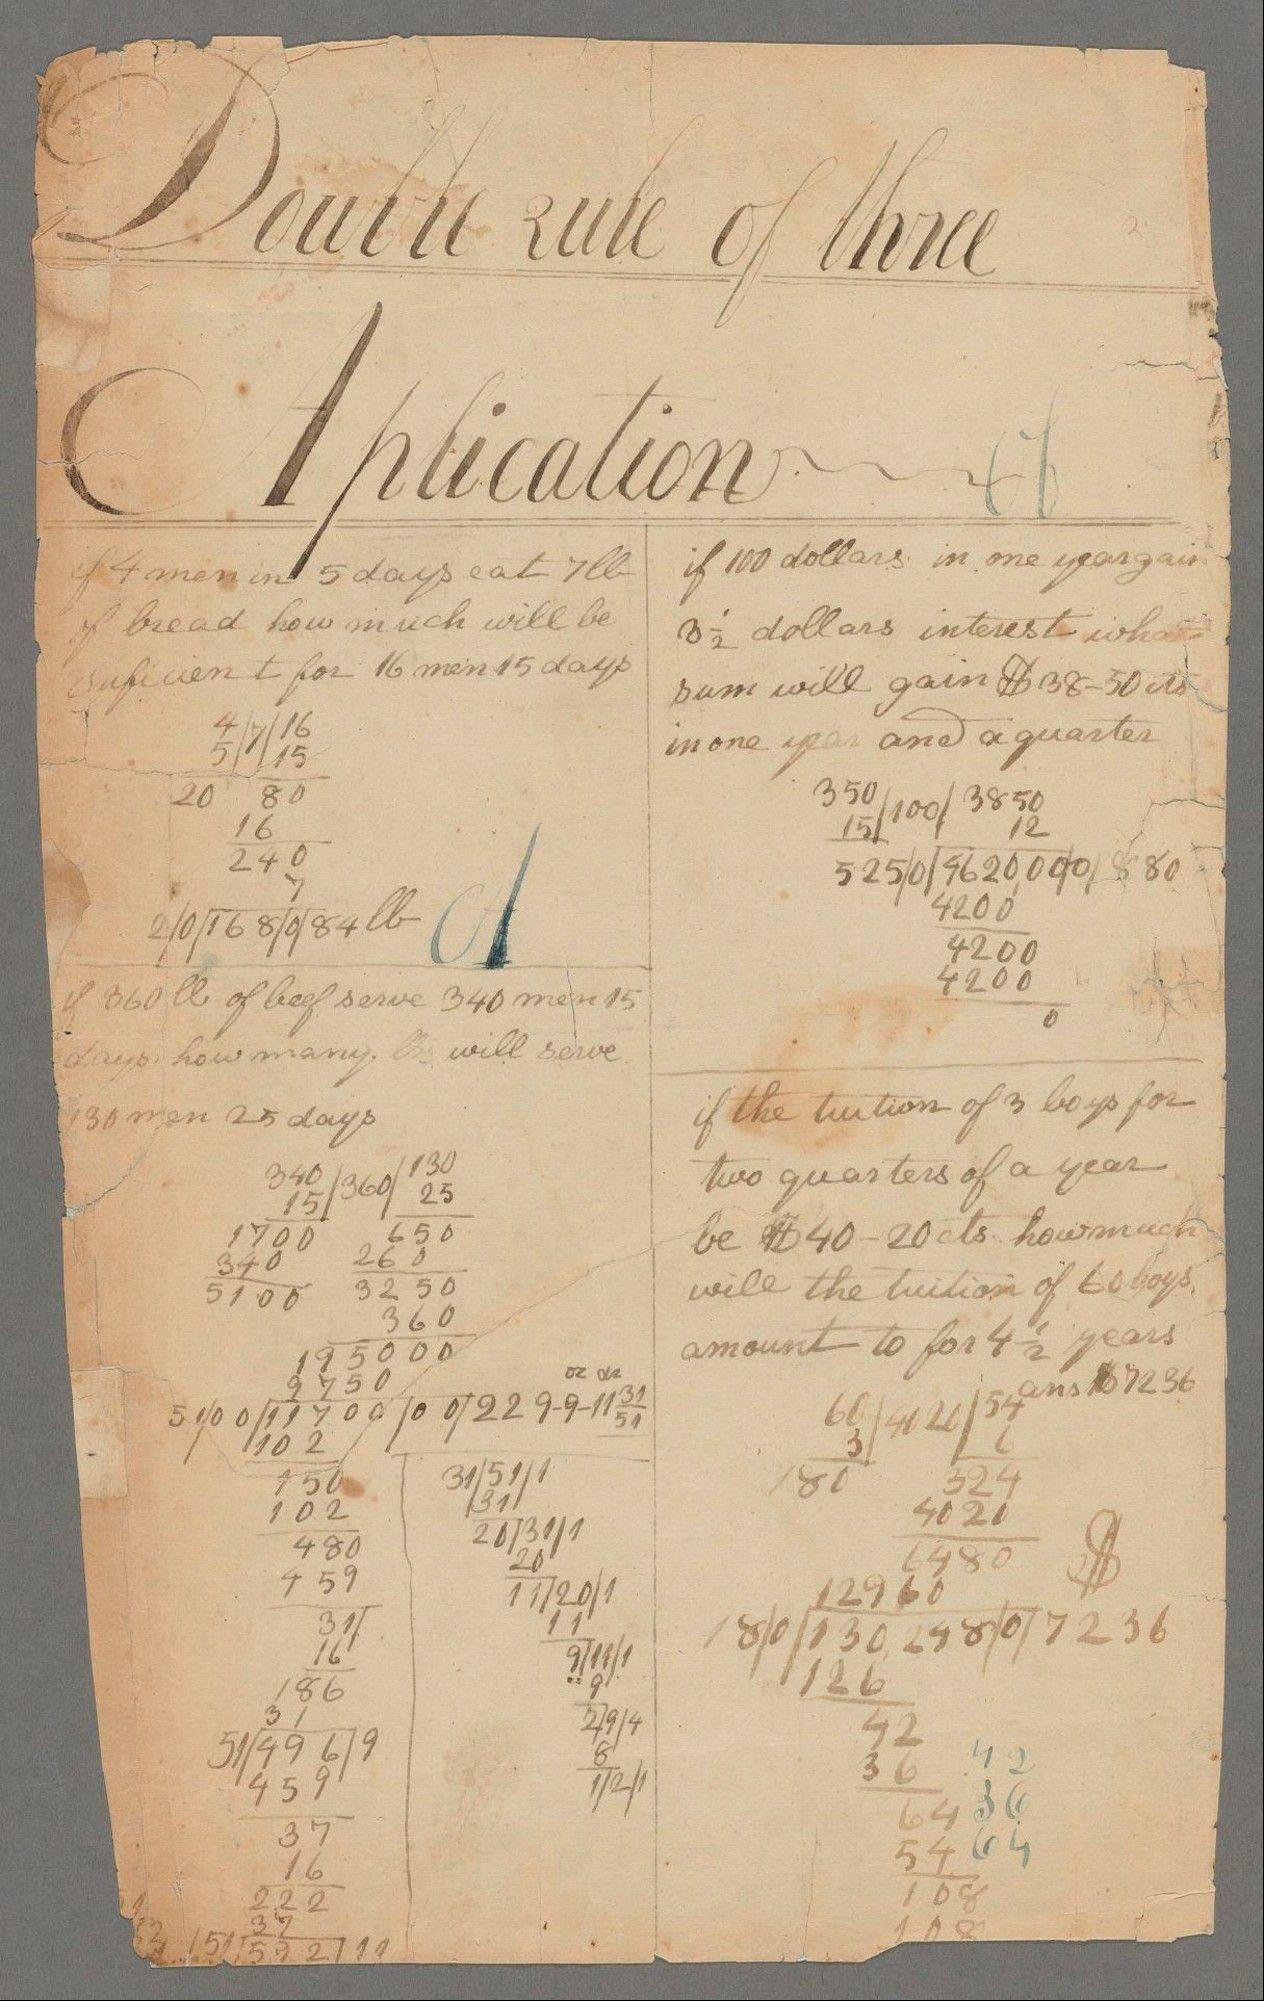 Illinois State University math professors Nerida Ellerton and Ken Clements confirmed two new pages to add to the math notebook believed to be the oldest surviving document written by Abraham Lincoln.